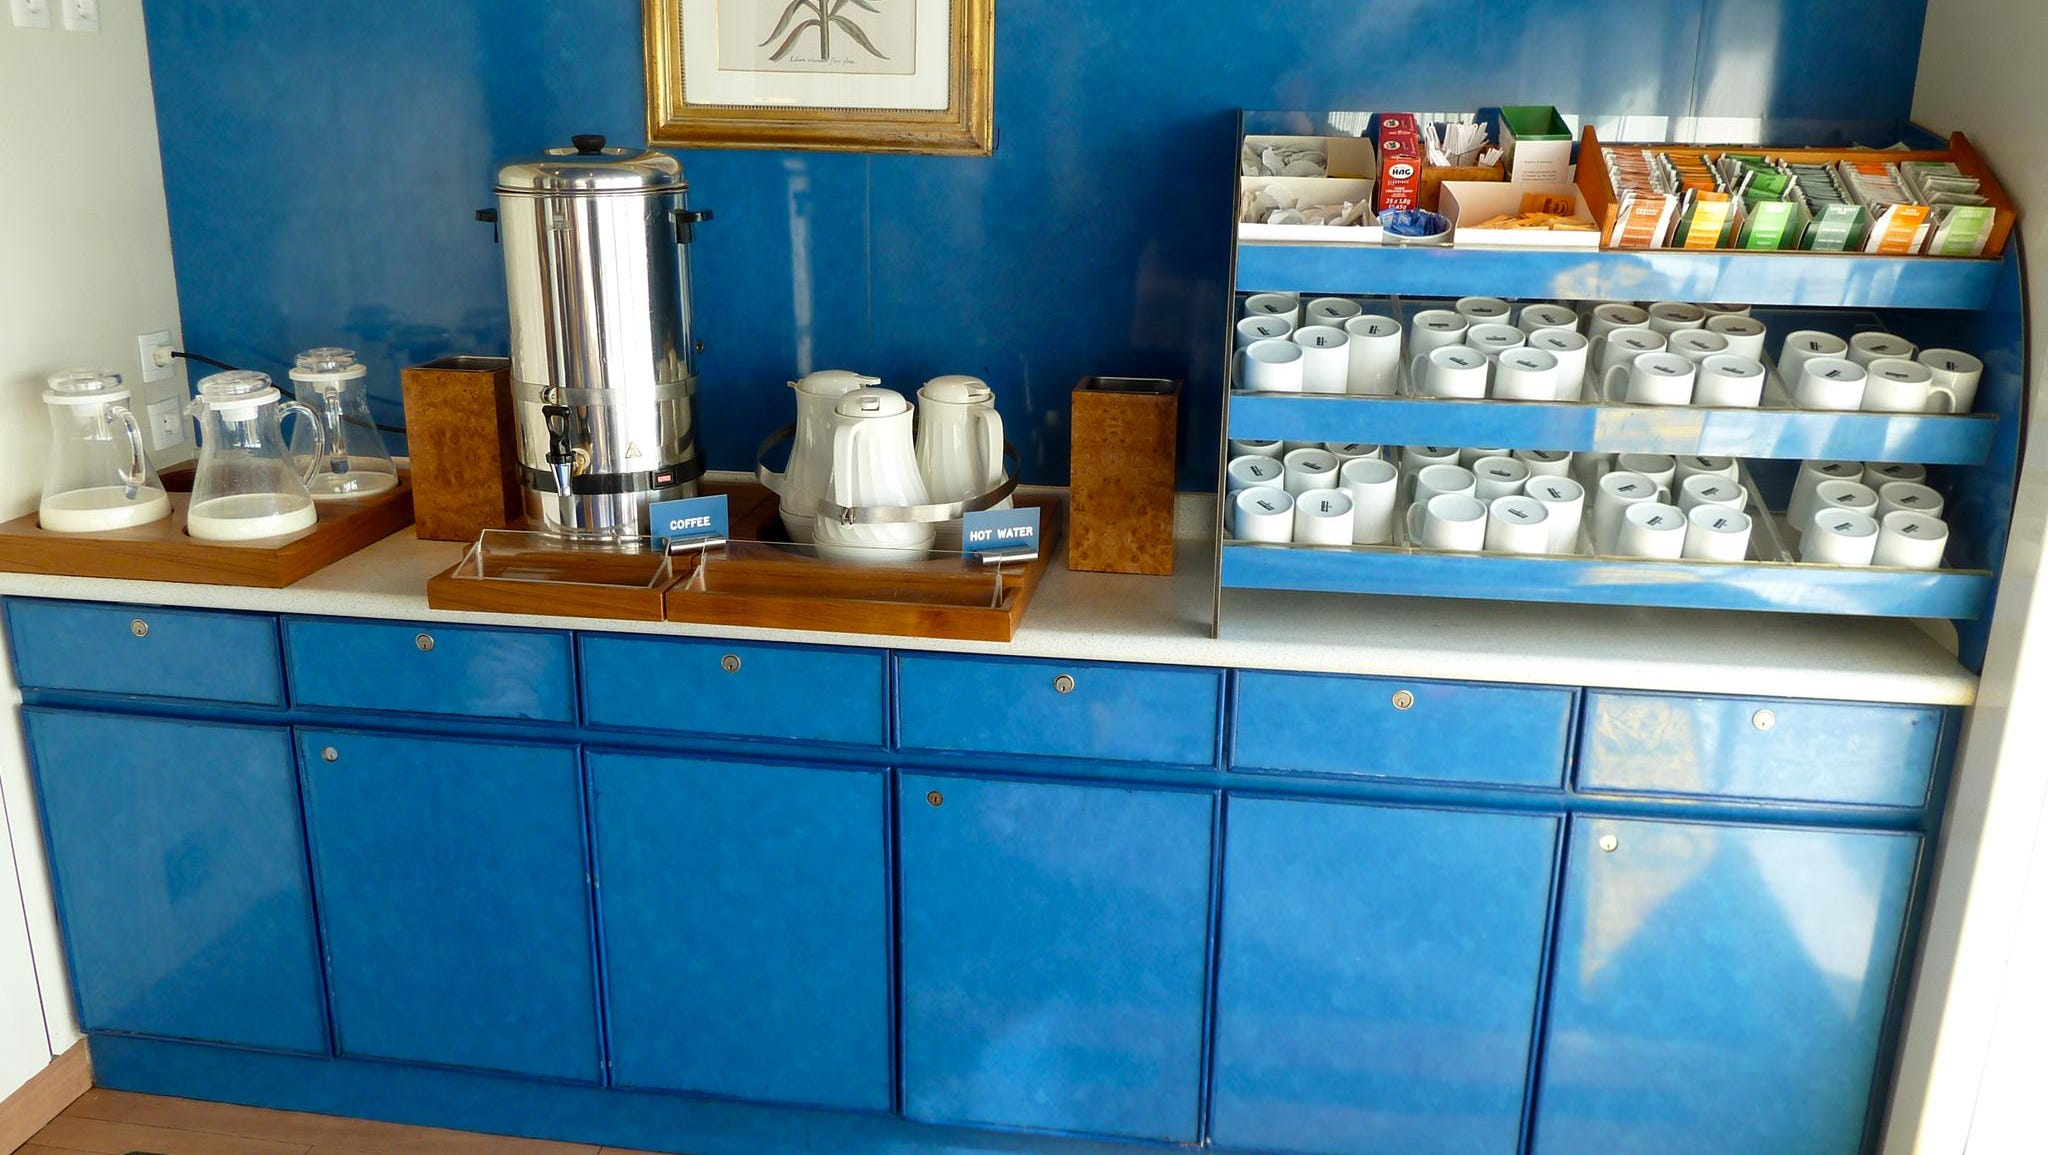 Self-service tea and coffee stations are located on either side of Marcos Restaurant.